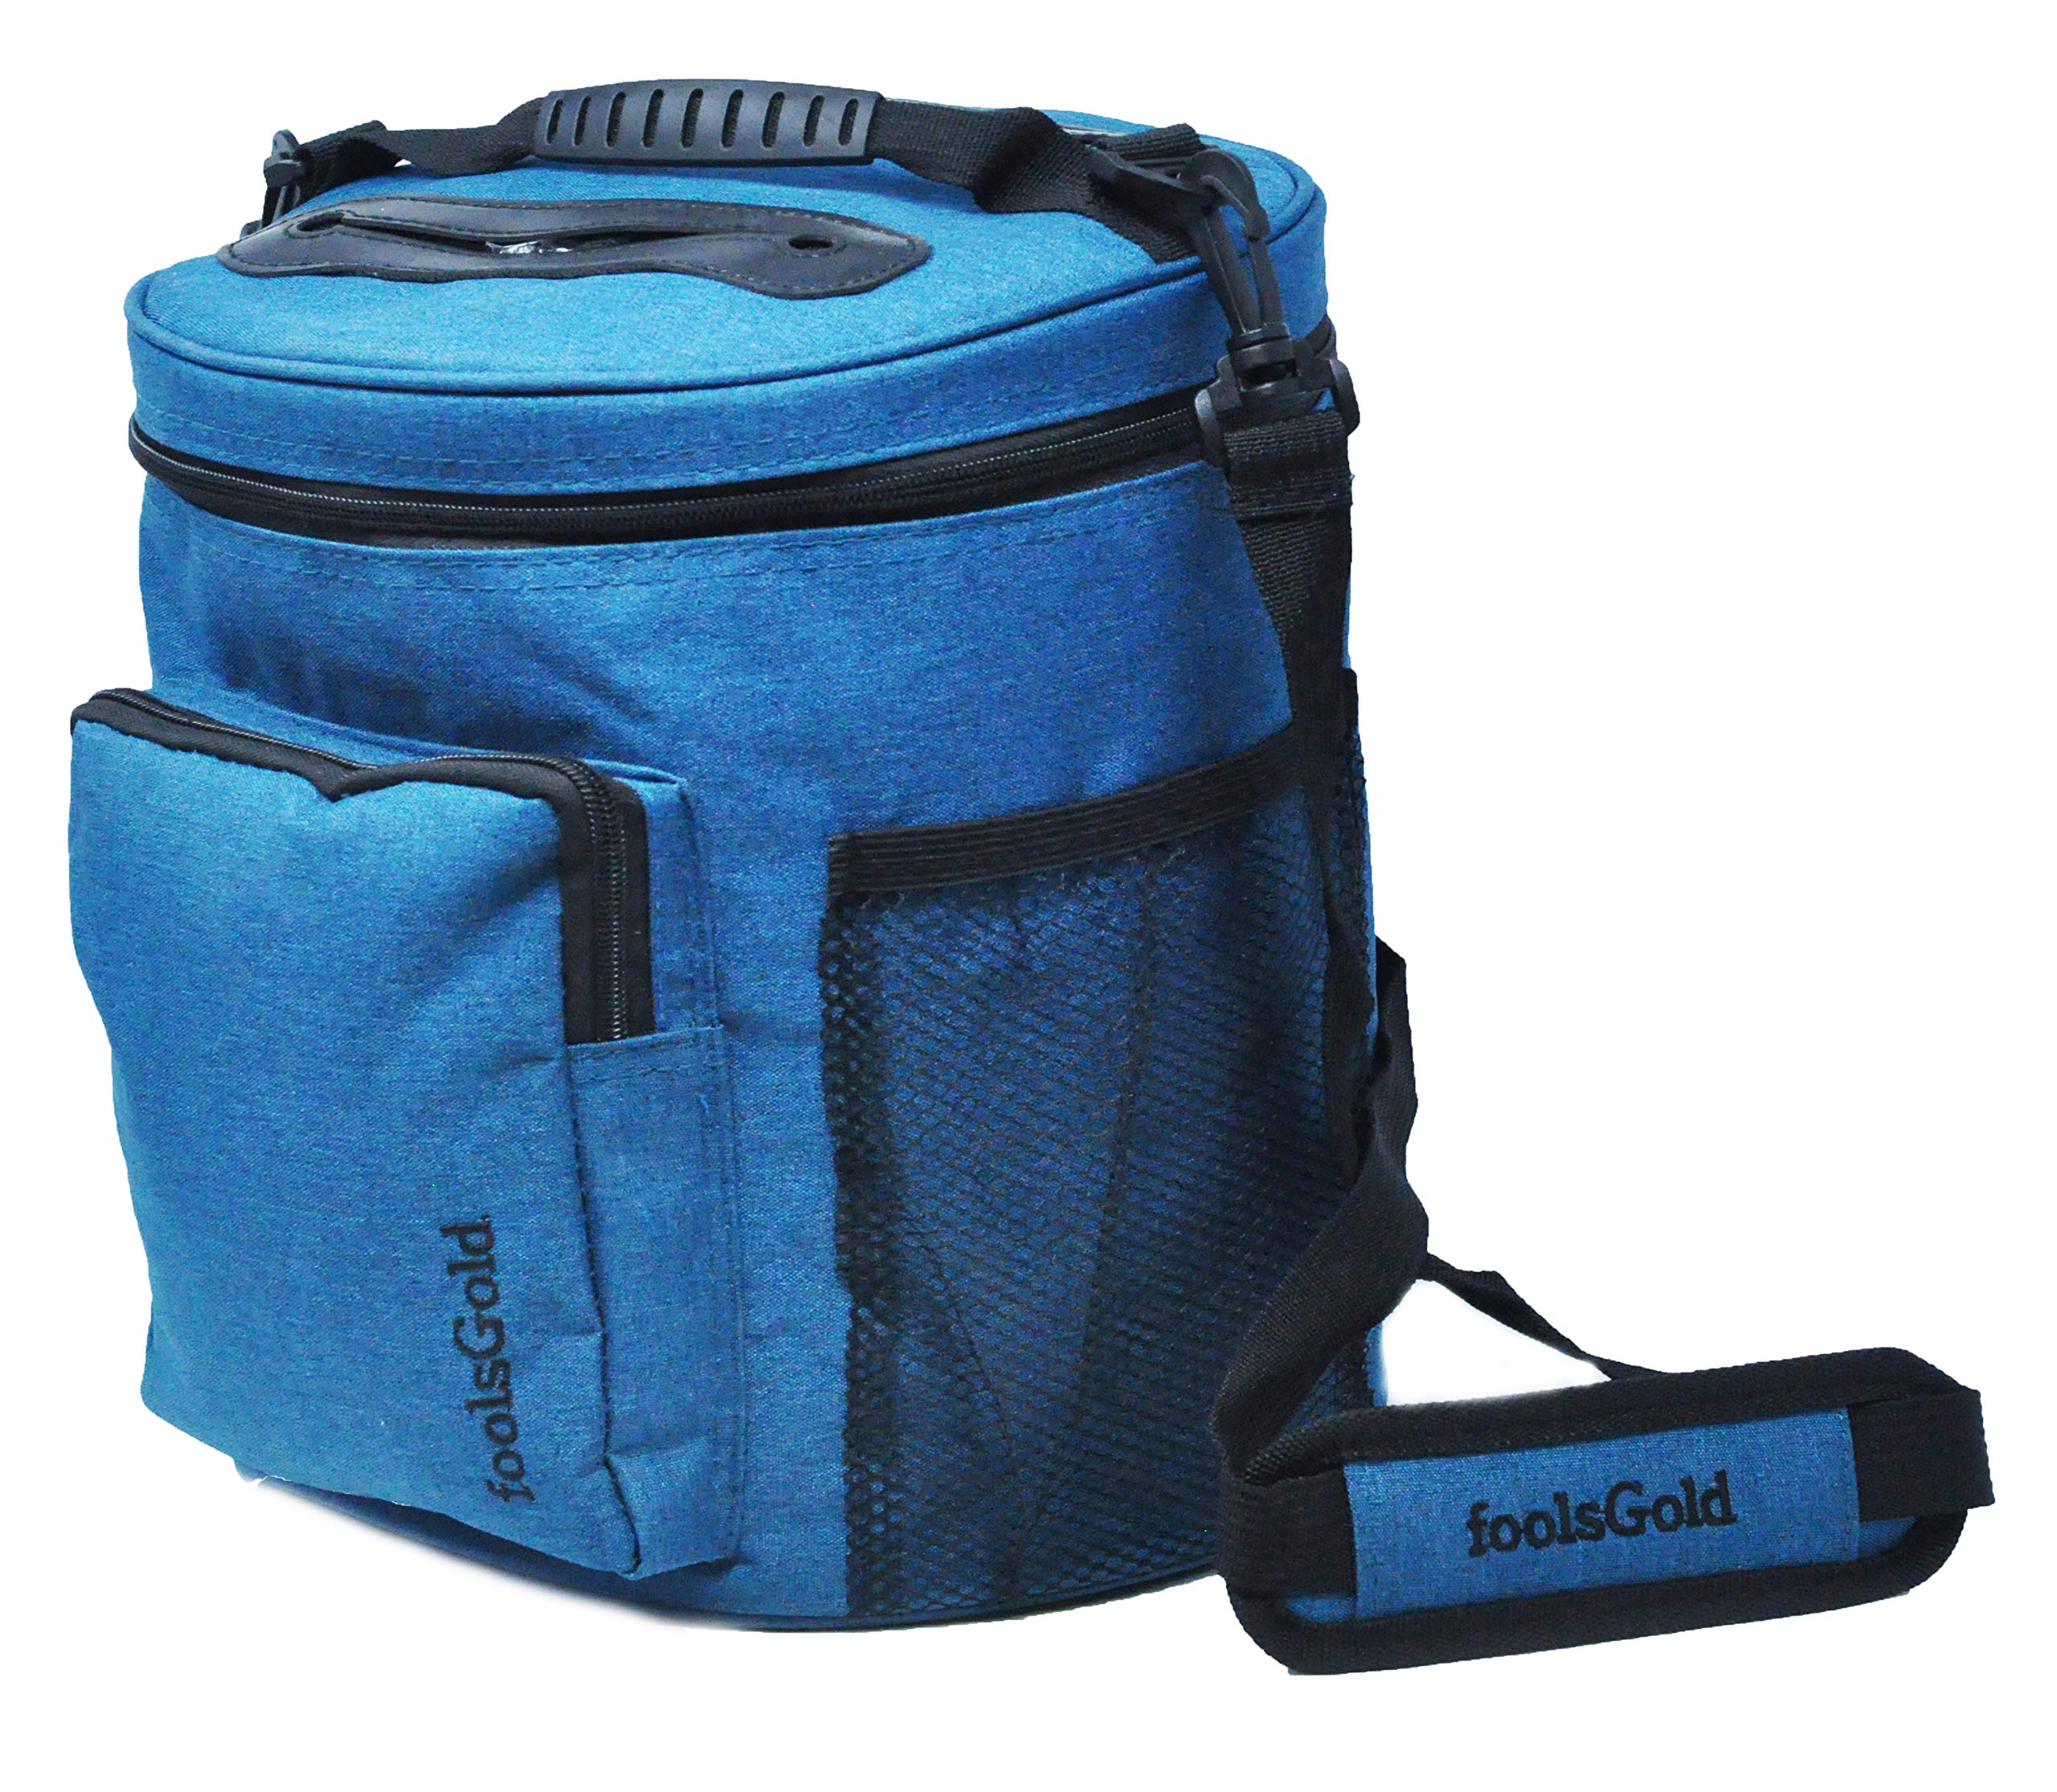 foolsGold Pro Easy Carry Dual Slot Knitting Bag for Wool and Yarn with 2 Organiser Sections and Zip Pocket - Teal